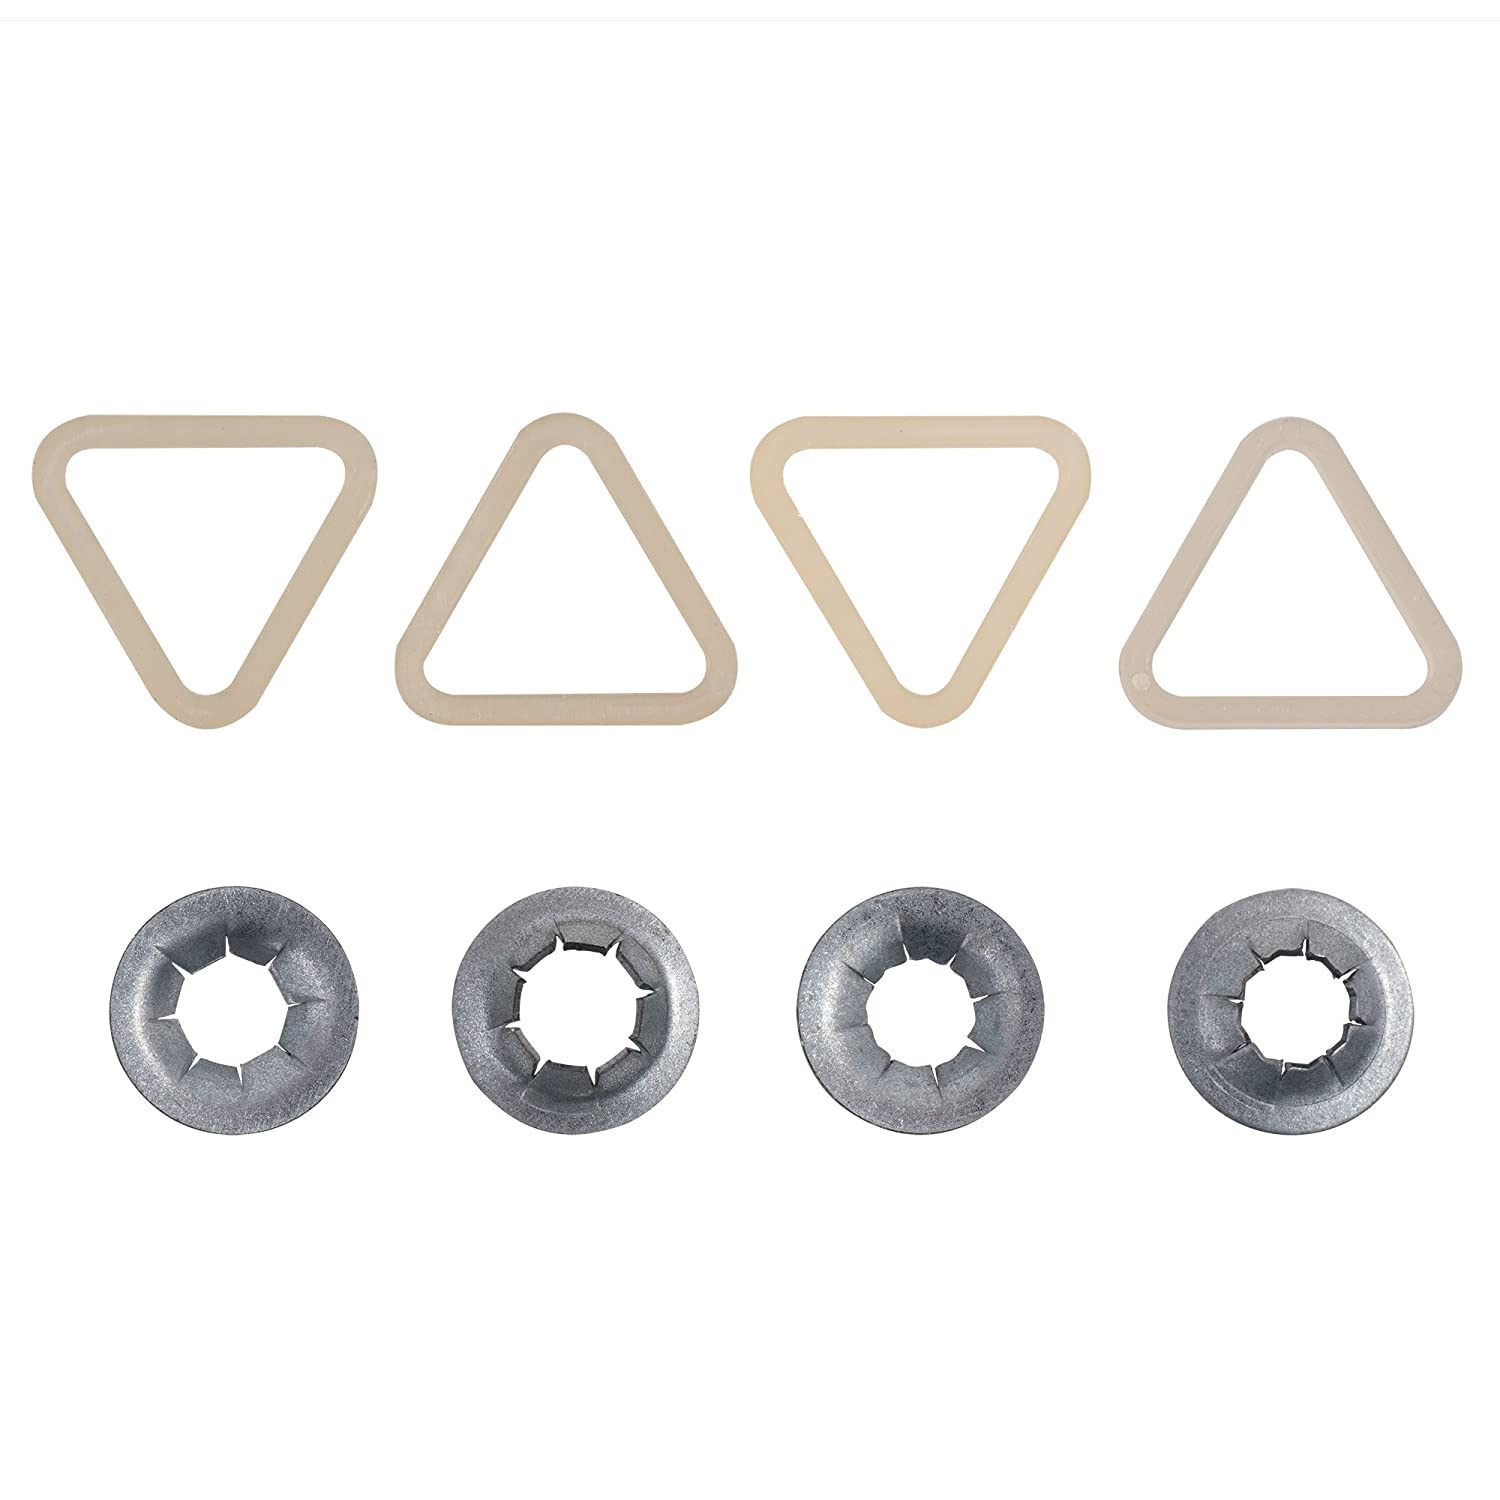 Ultra Durable 349241t Dryer Drum Roller Kit Replacement Wiring Diagram Whirlpool Ler7646jq0 By Blue Stars Exact Fit For Kenmore Replaces 349241 3397588